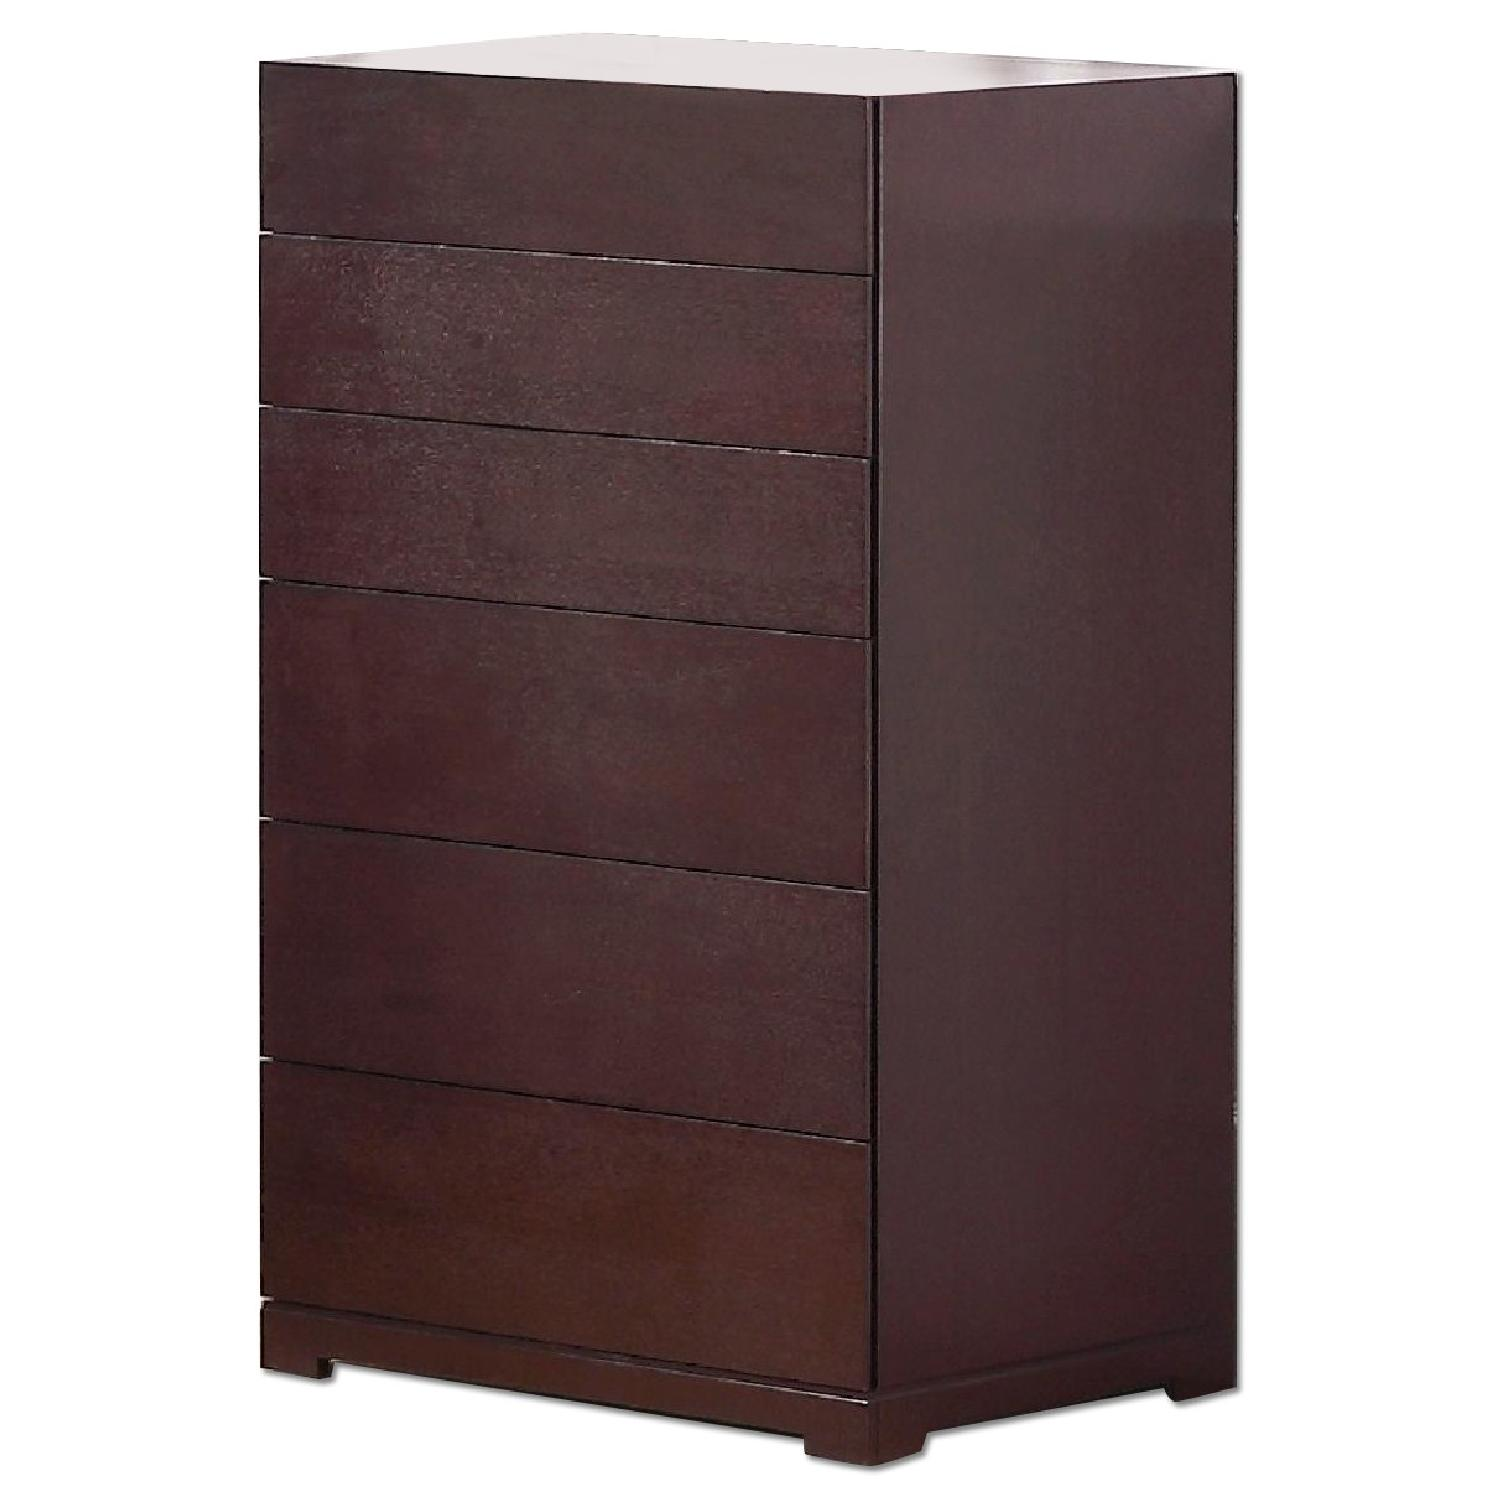 6-Drawer Chest in Espresso Finish w/ Premium Full Extension Tracks - image-0